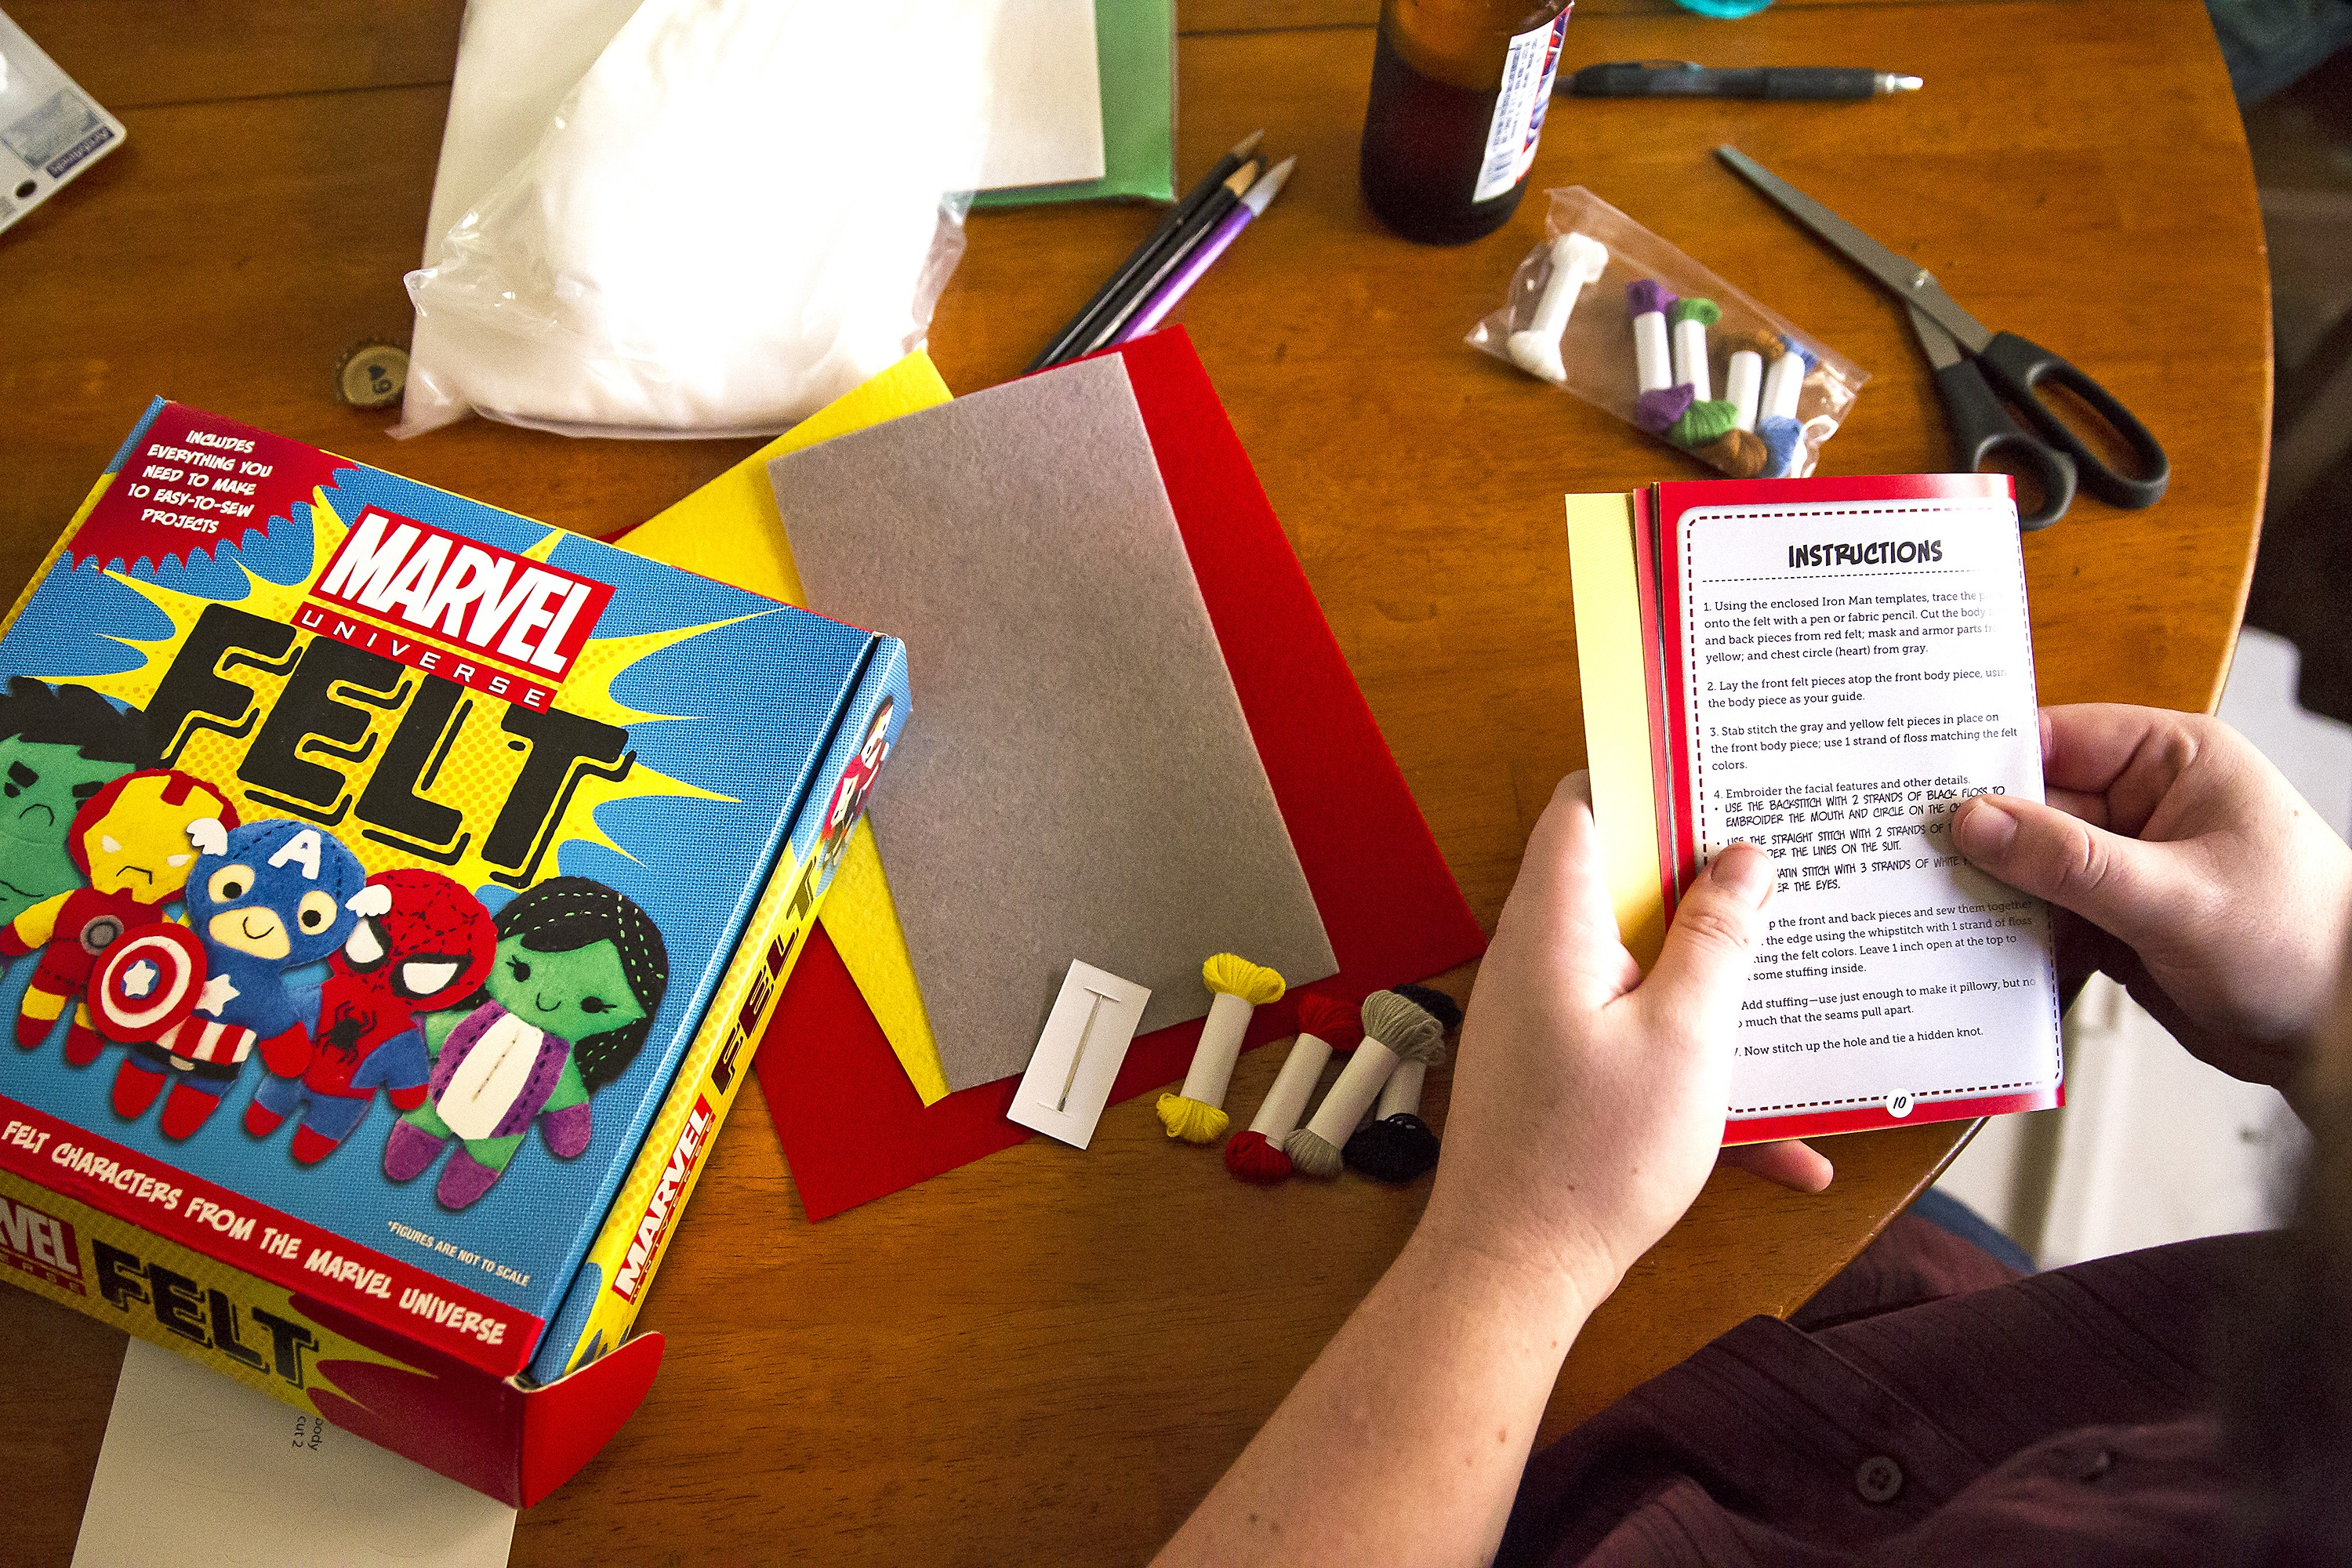 Crafty christmas a guide to do it yourself gift making arts san click to enlarge instructions first definitely read the manual before diving into sewing your first marvel universe felt character solutioingenieria Choice Image